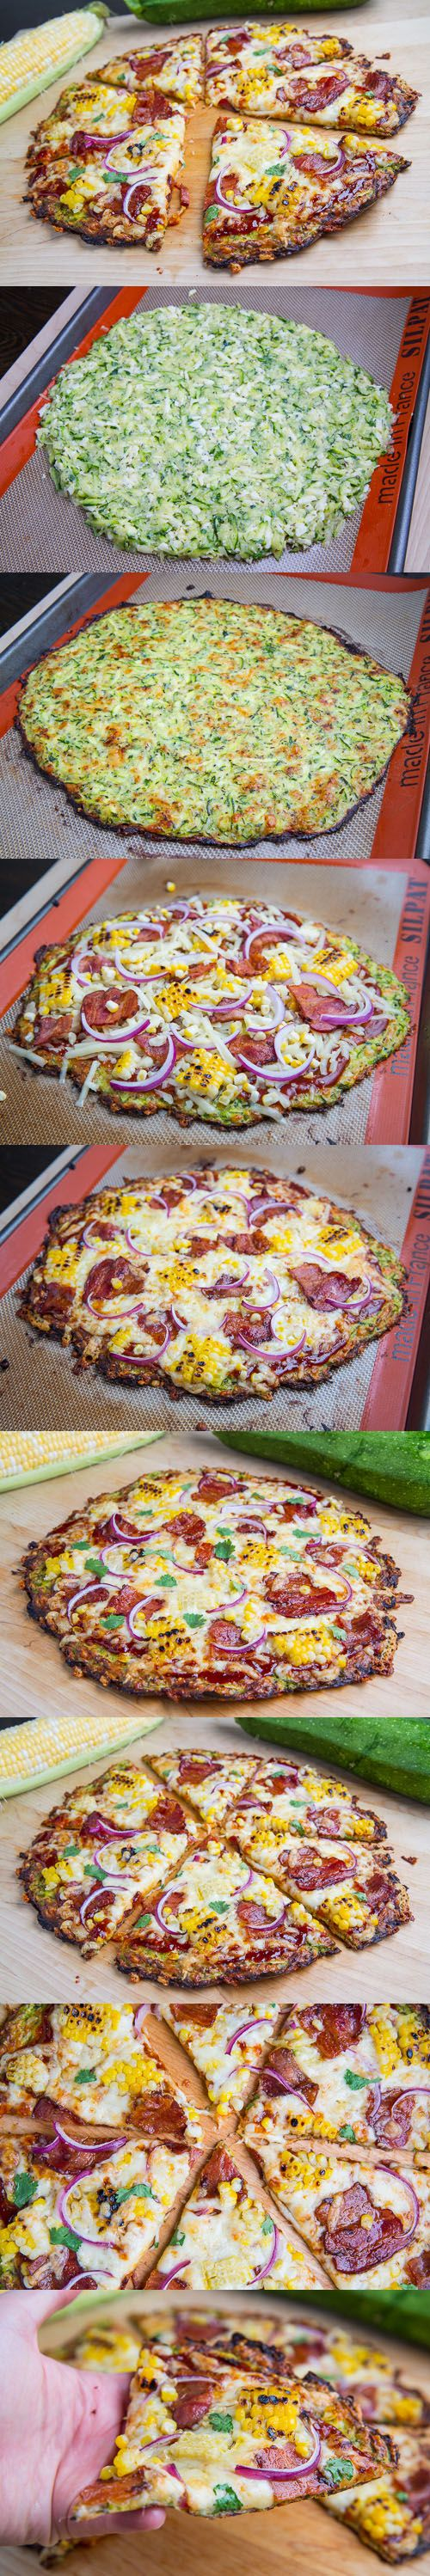 Zucchini Crust Chipotle BBQ Bacon and Grilled Corn Pizza